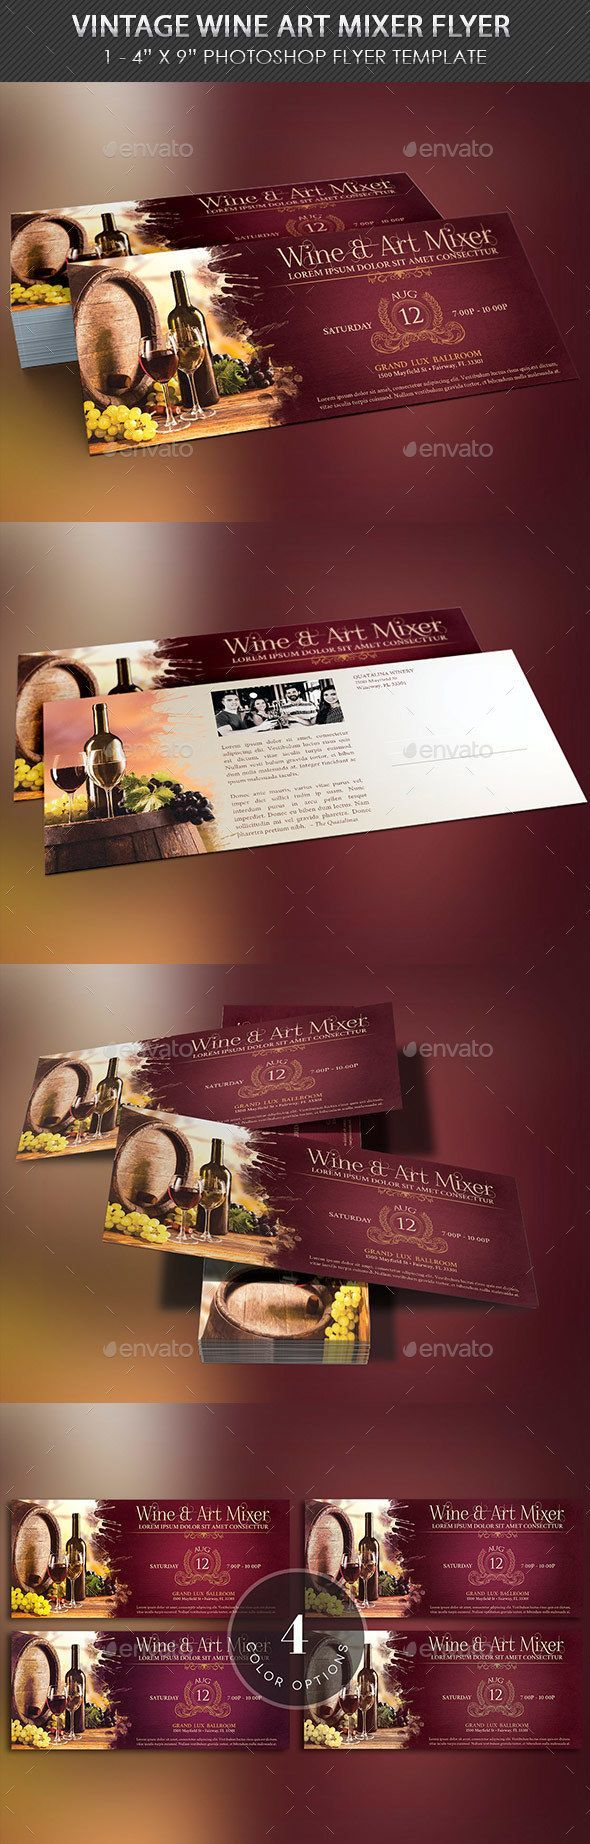 Vintage Wine Art Mixer Flyer Template Wine Art Vintage Wine Flyer Template